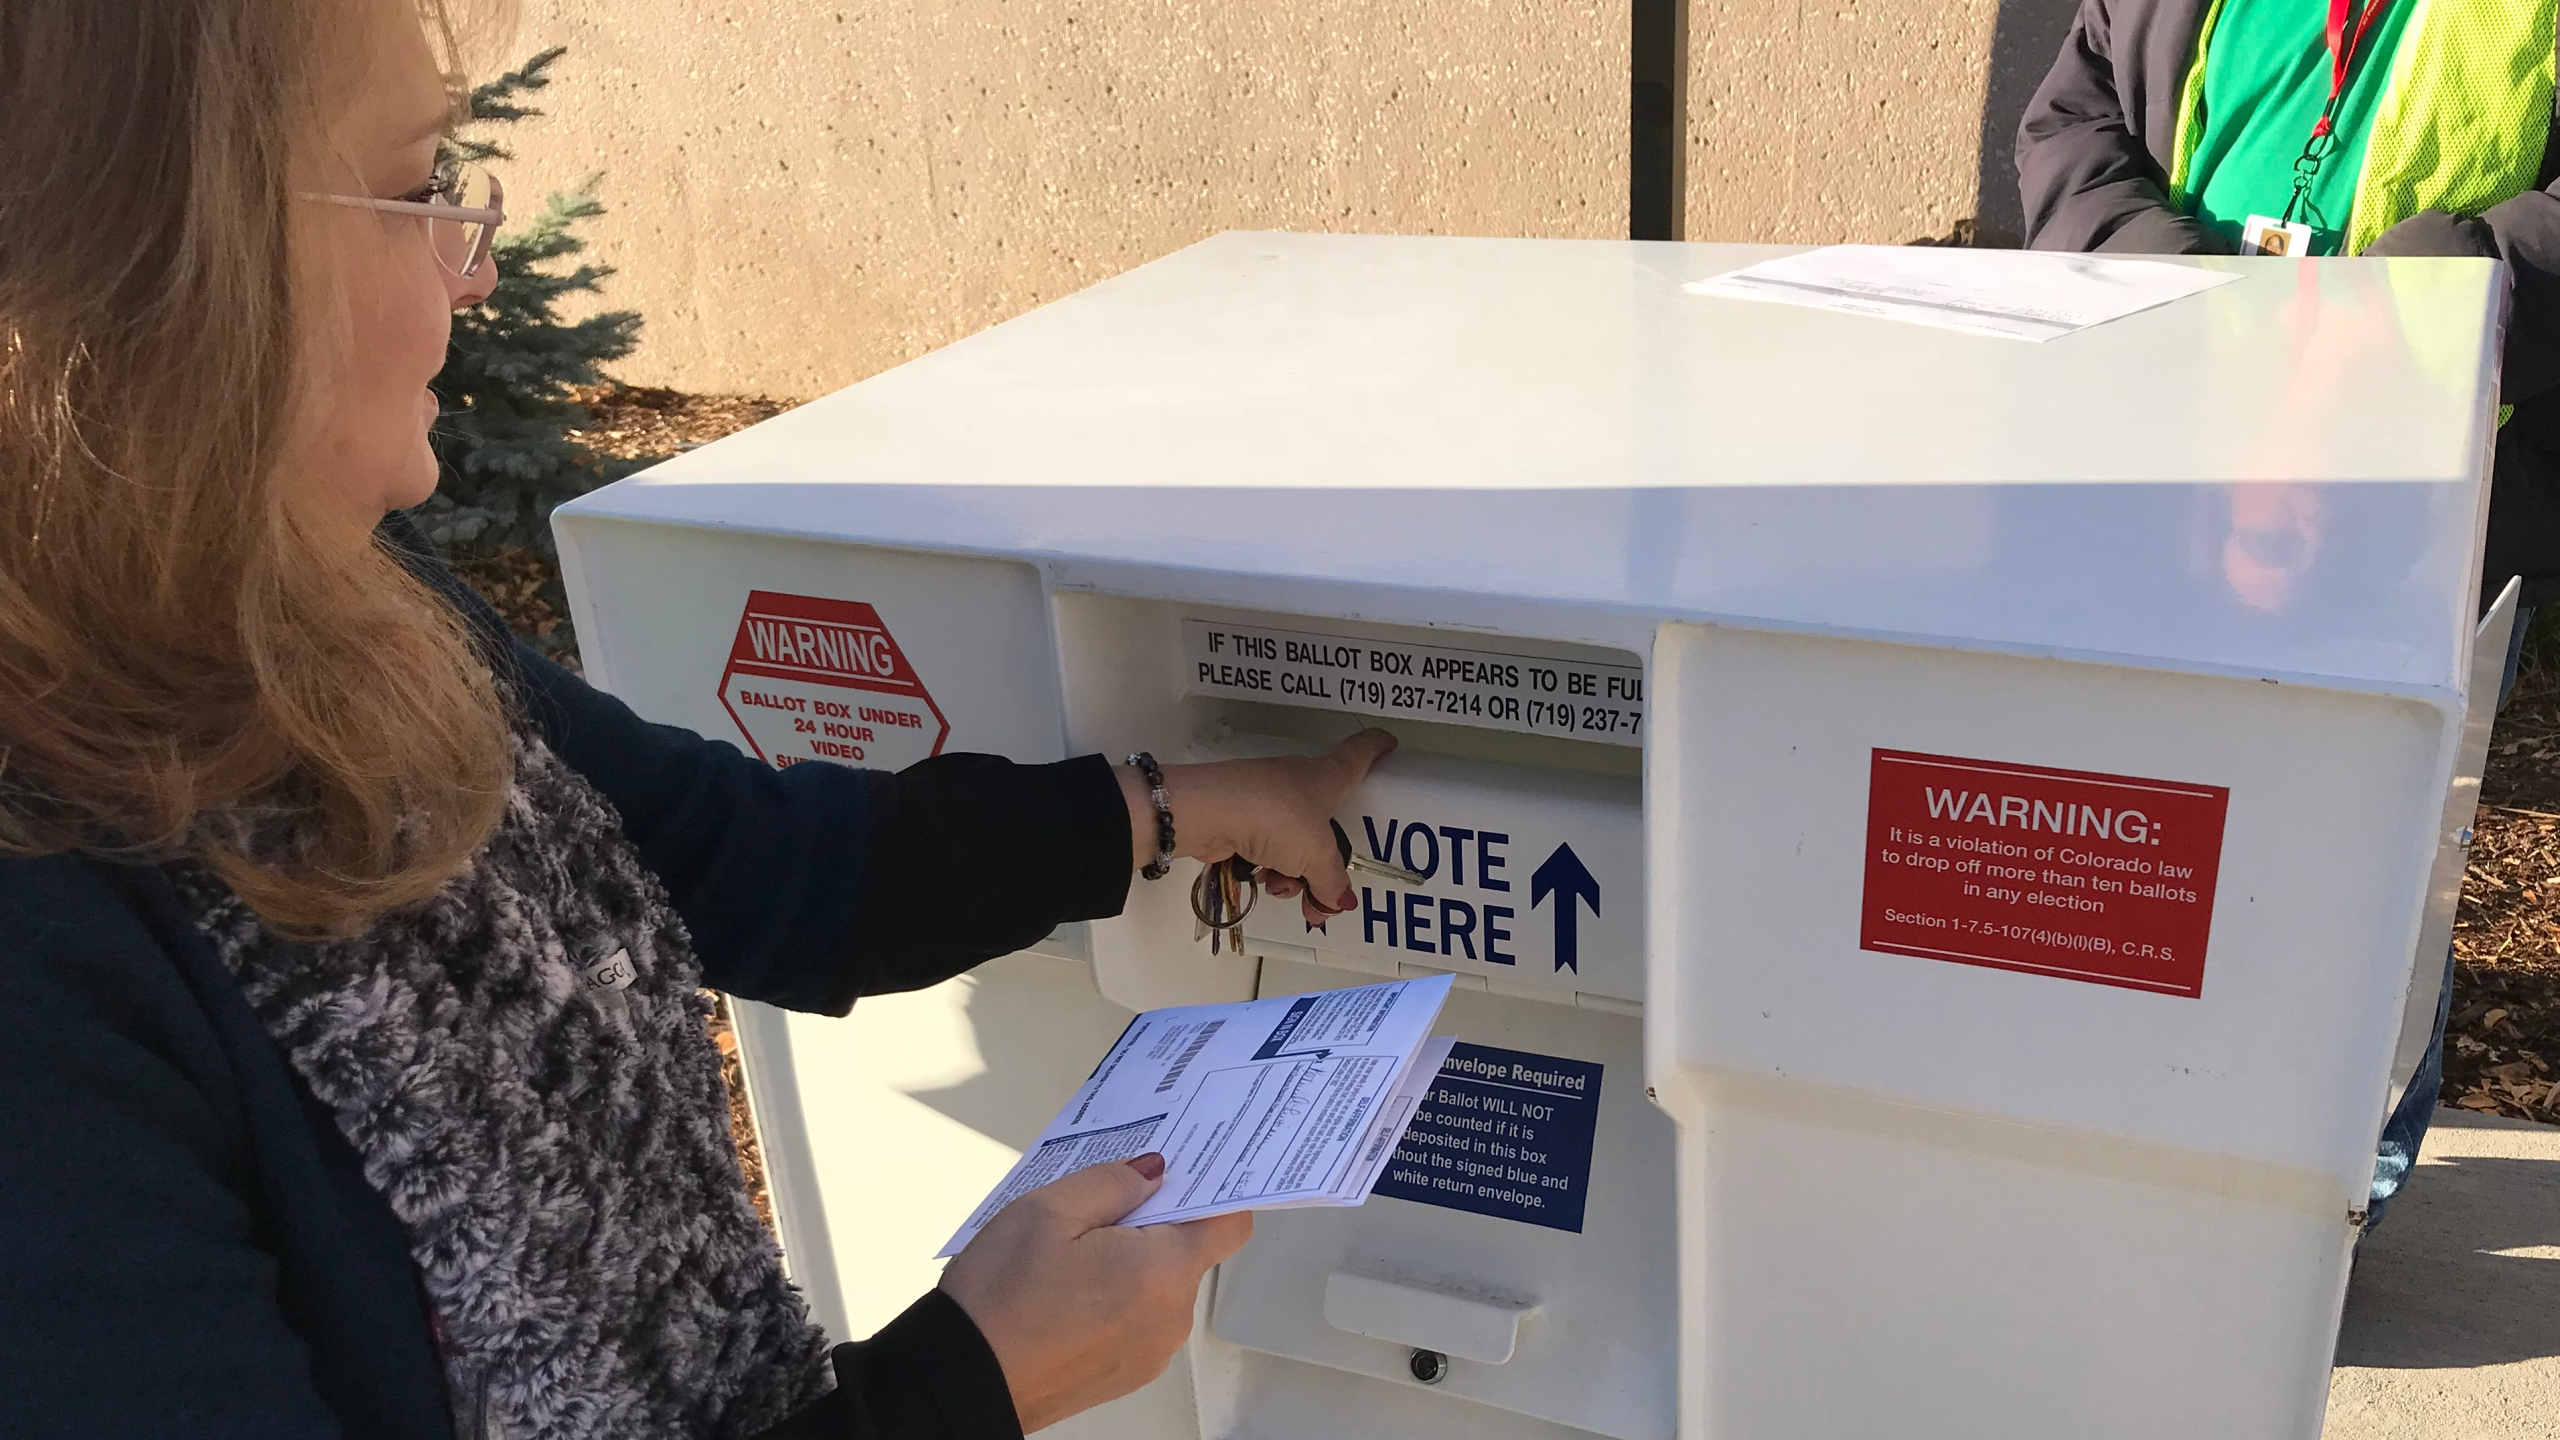 A voter casts her ballot at the El Paso County Clerk's Office branch in downtown Colorado Springs Tuesday morning. Shawn Shanle - FOX21 News